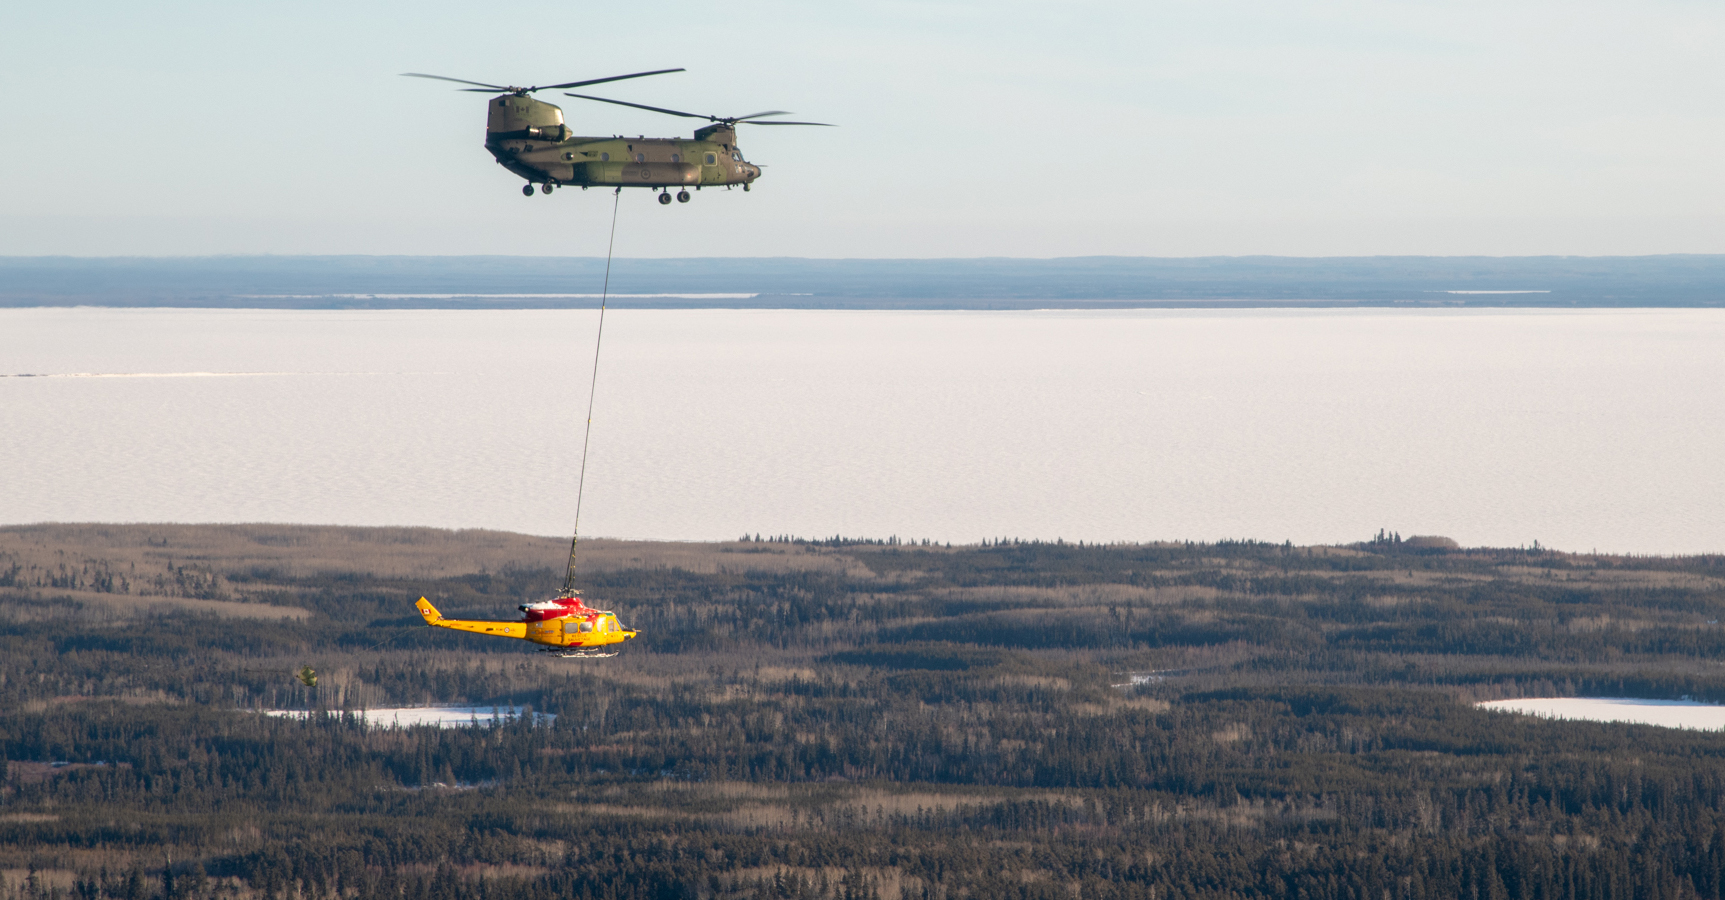 hight resolution of a large helicopter in flight with a smaller helicopter suspended below it attached by